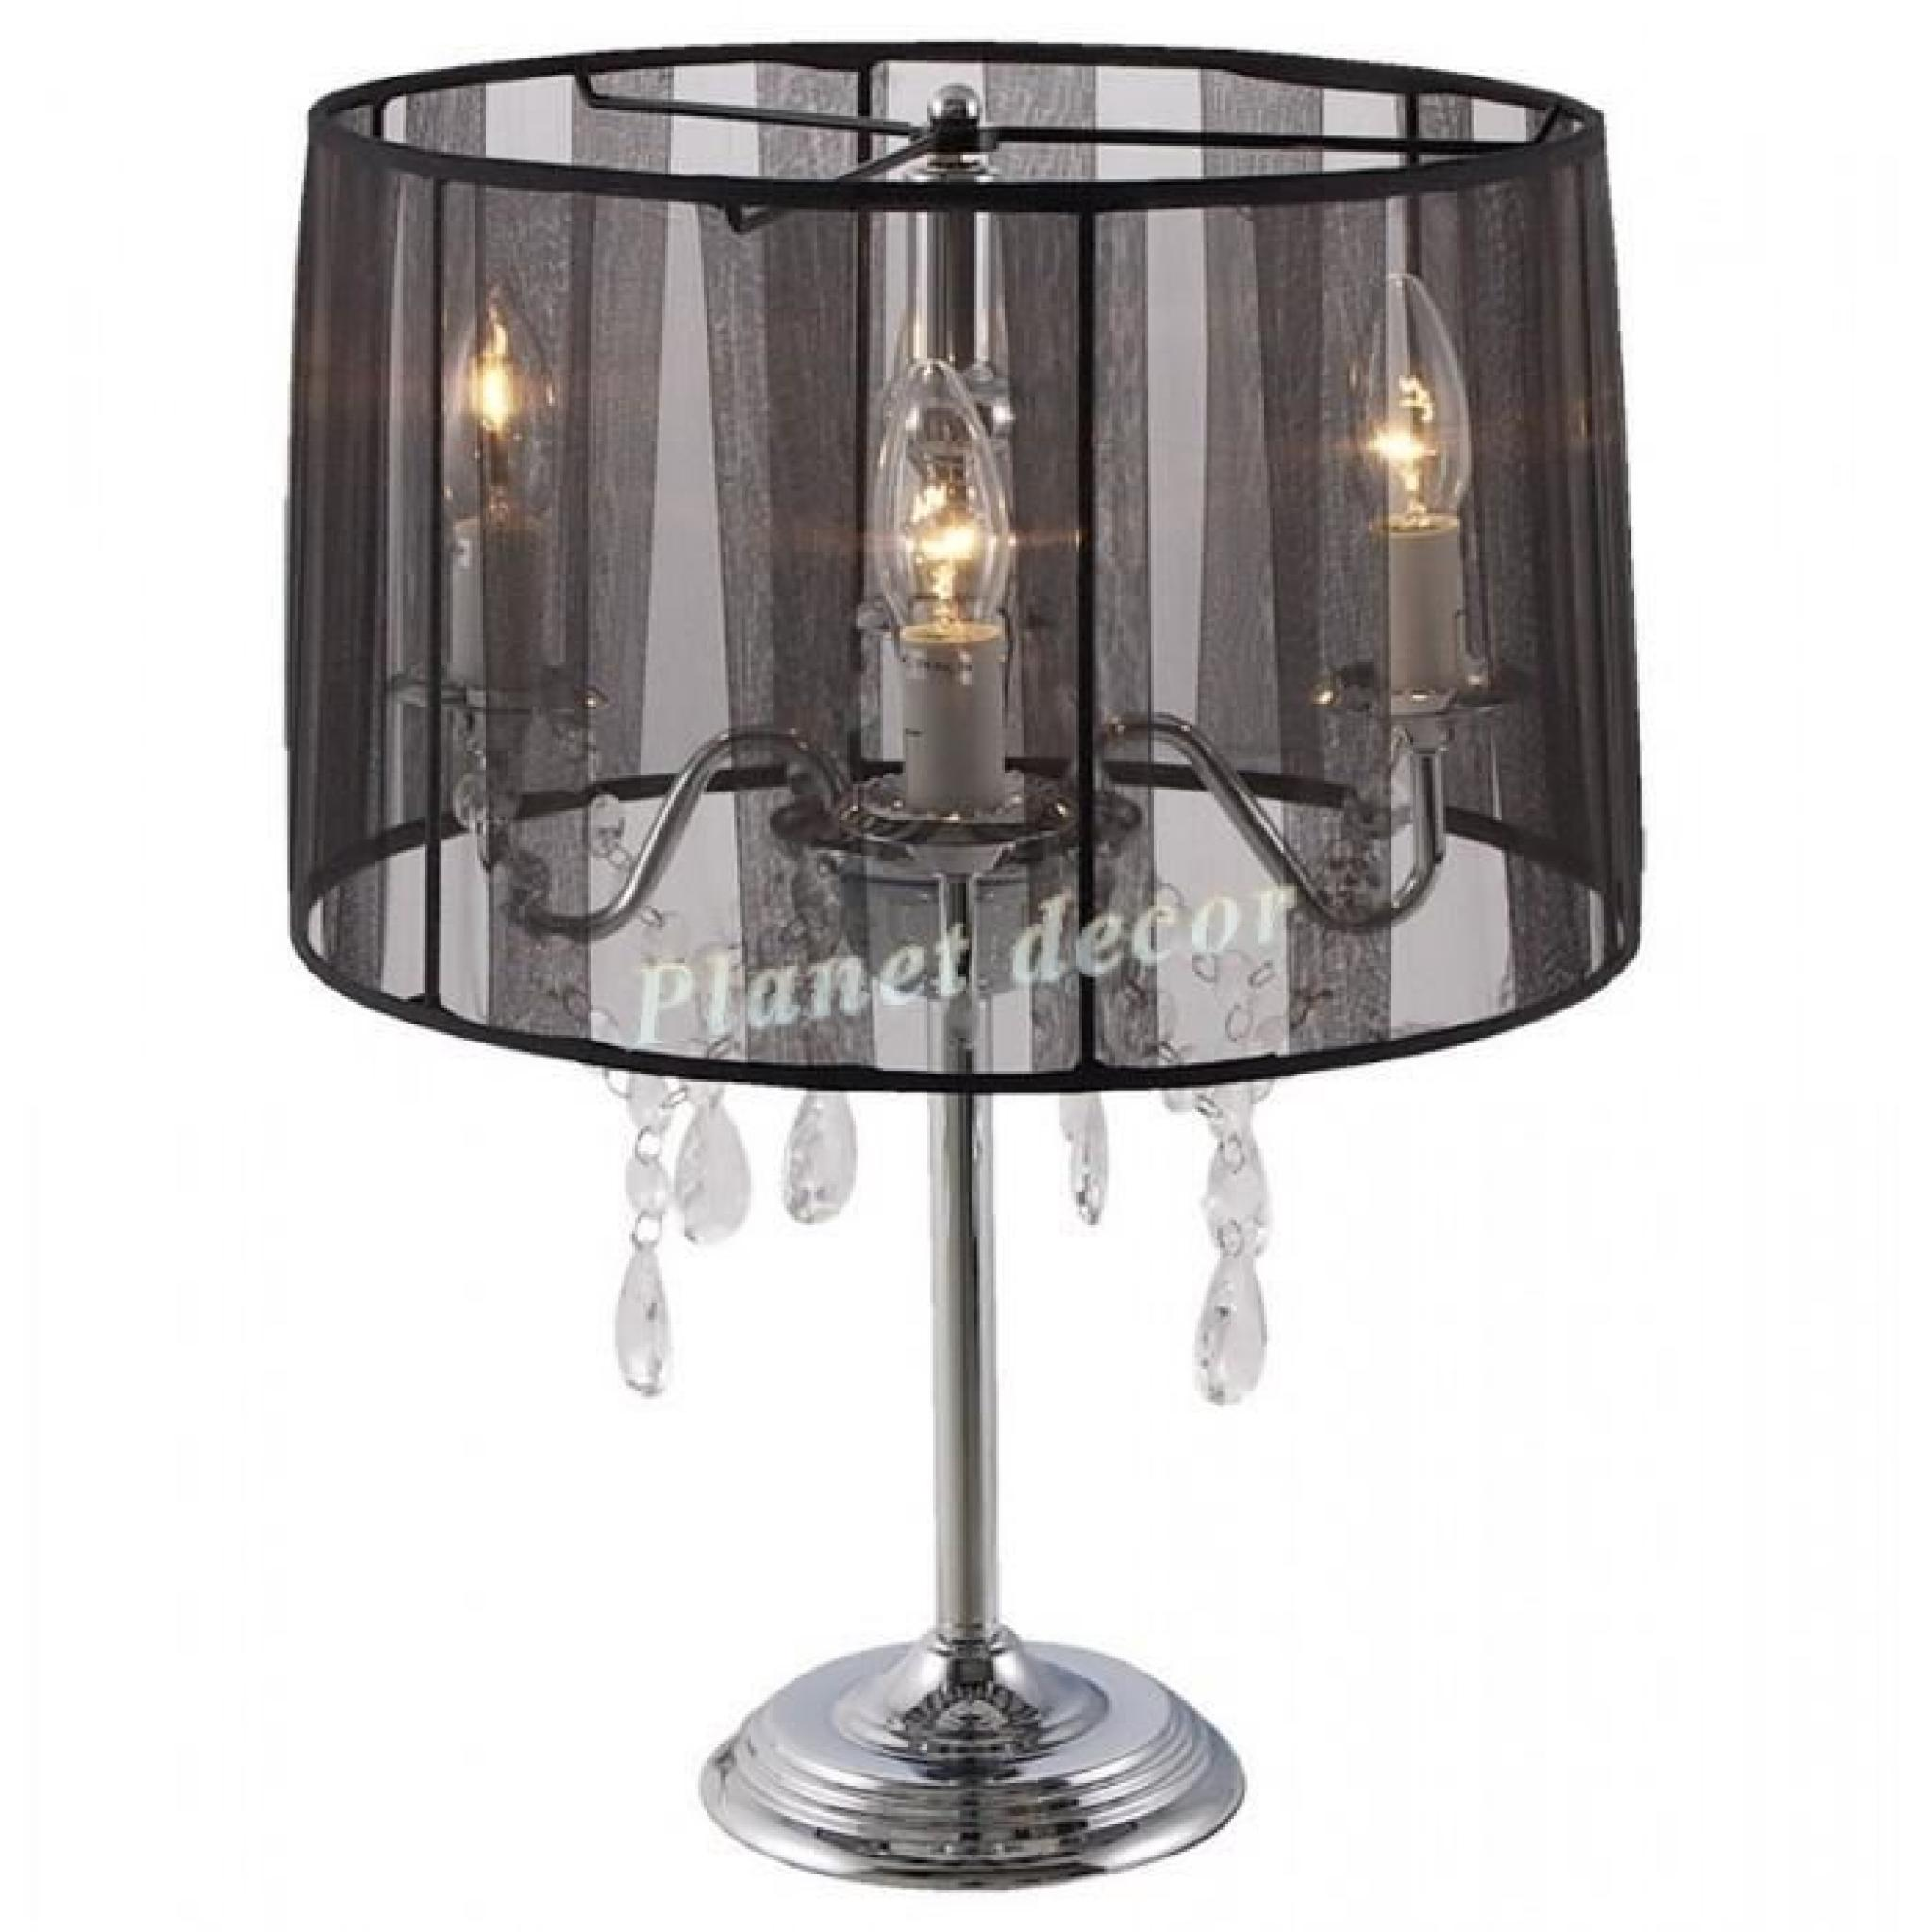 lampe de chevet noire chandelier baroque noir achat vente lampe a poser pas cher couleur et. Black Bedroom Furniture Sets. Home Design Ideas